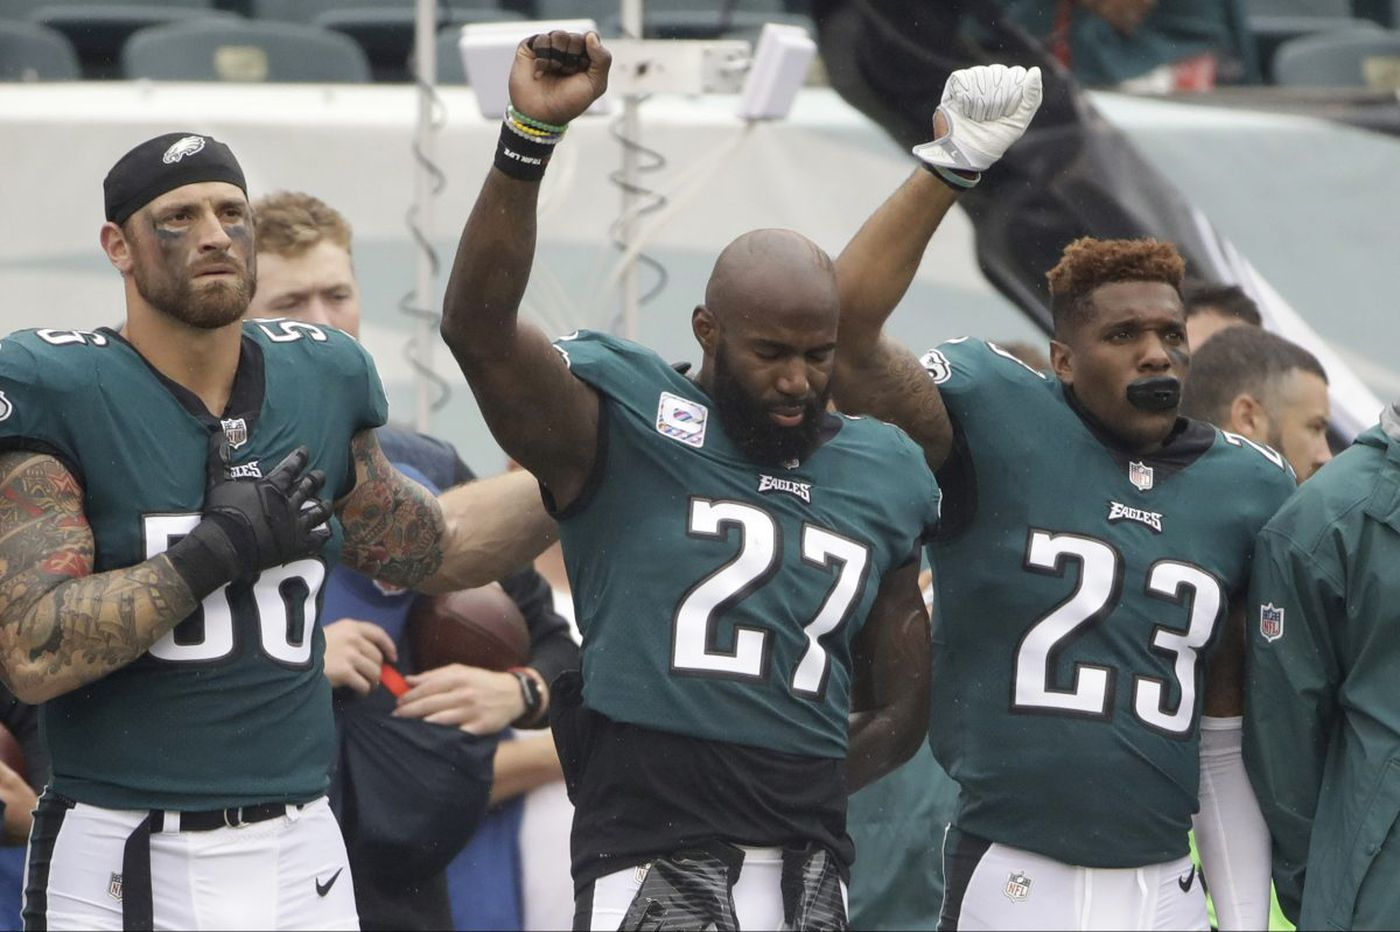 Malcolm in the middle: Eagles' Jenkins defends his role in talks to end NFL protests